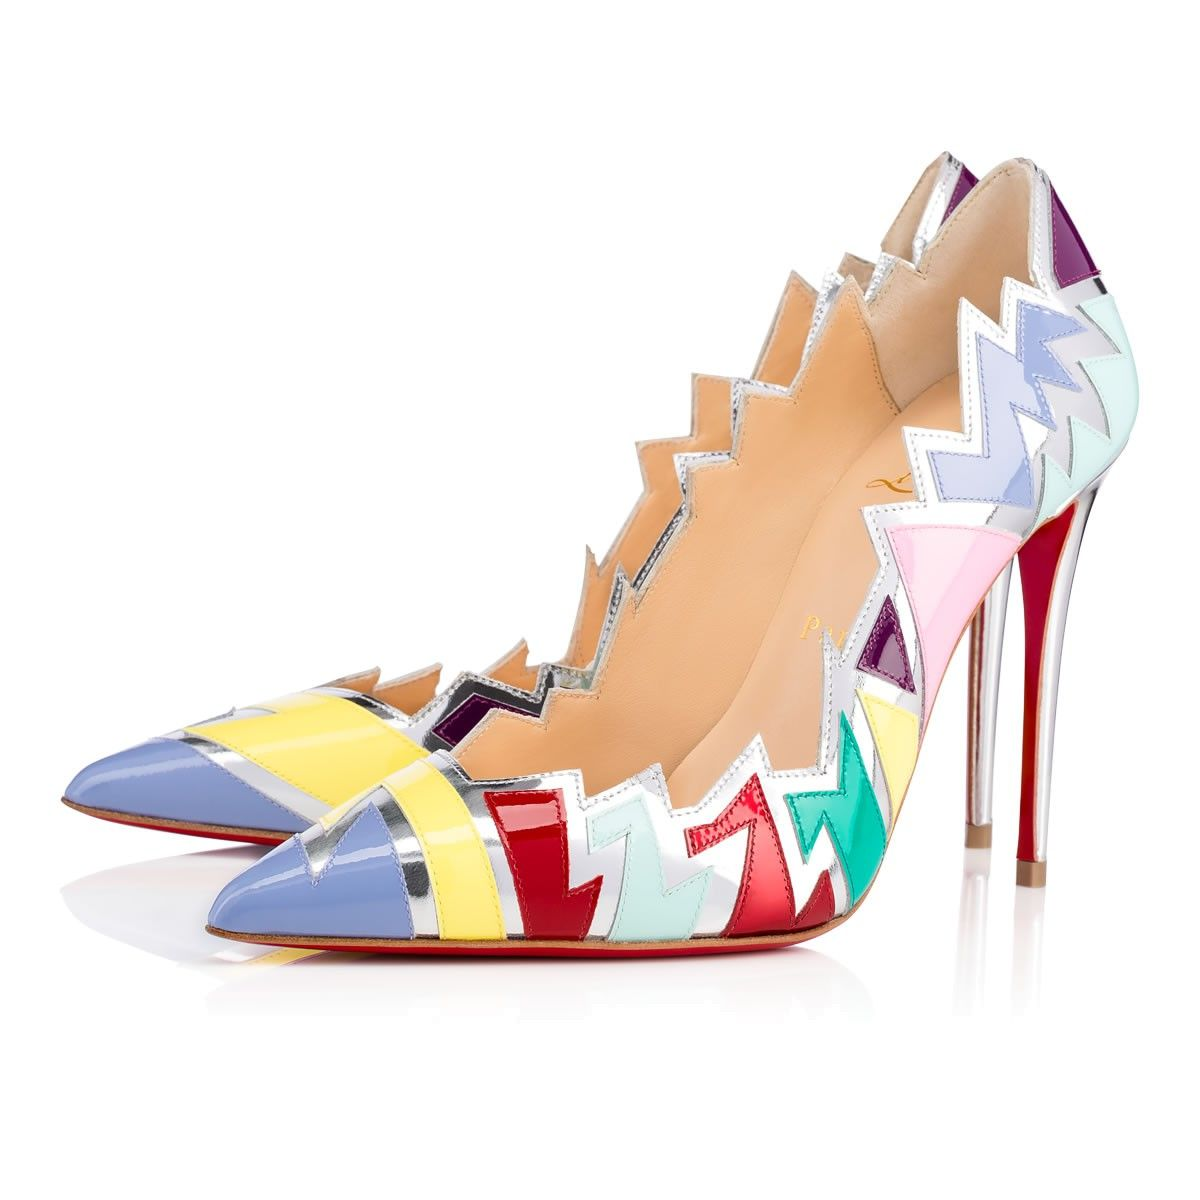 CHRISTIAN LOUBOUTIN Explotek 100 Version Lavander Patent Leather - Women  Shoes - Christian Louboutin. #